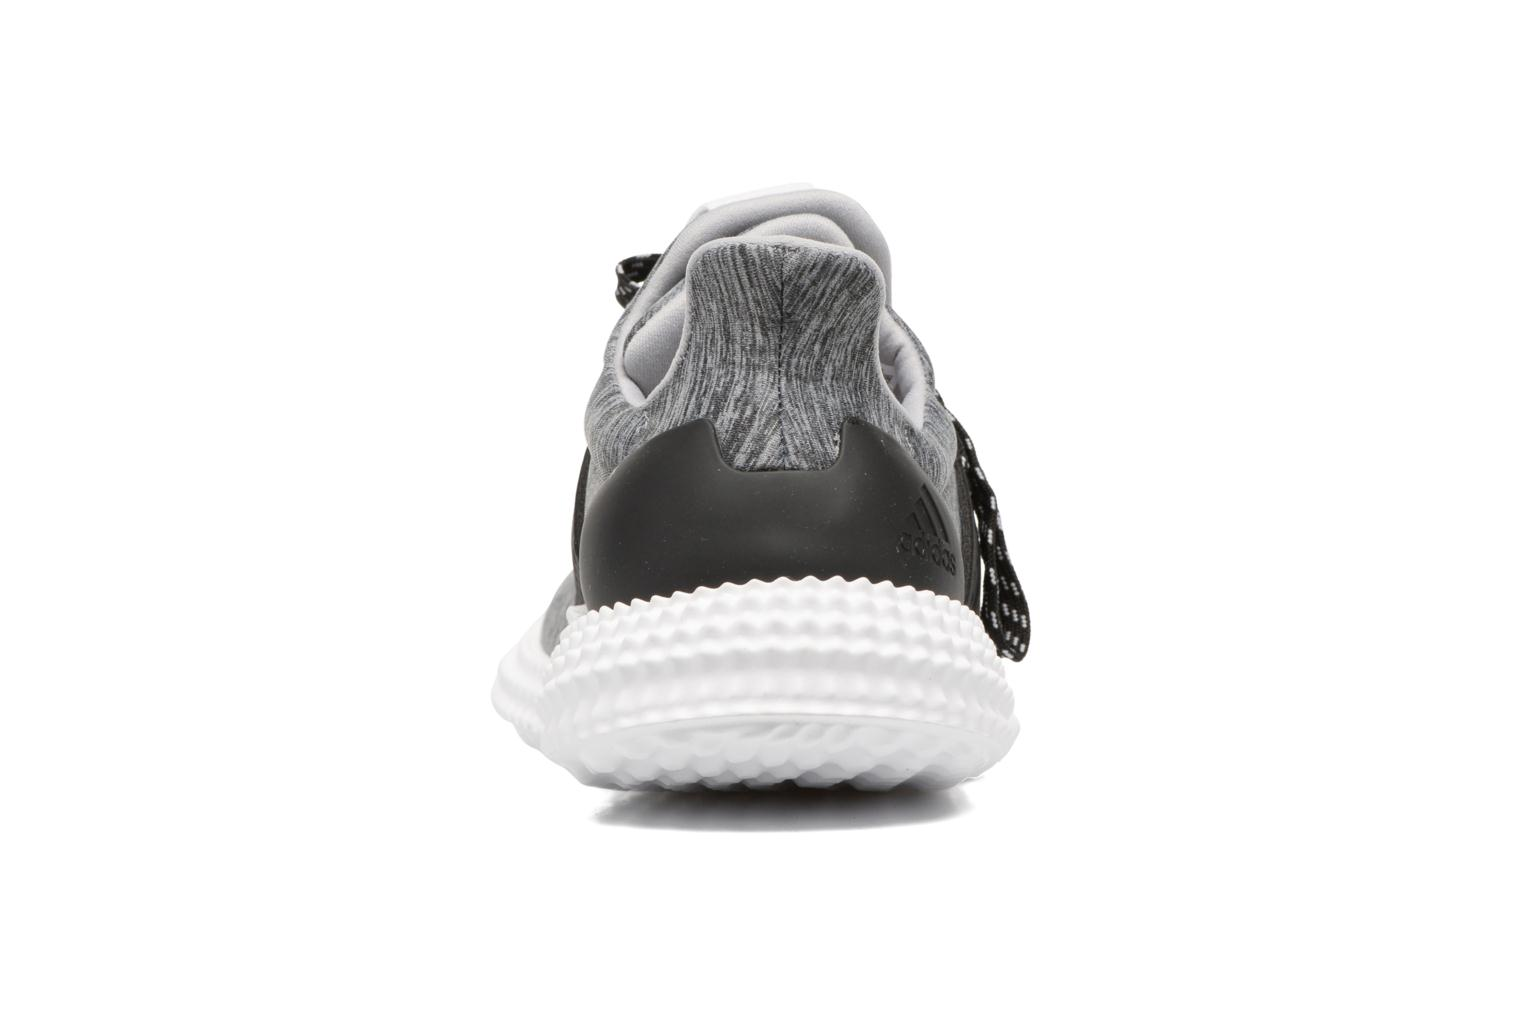 W Performance Noiess Brgrmo 7 24 Adidas Adidas Athletics Blacry wSvpaUq